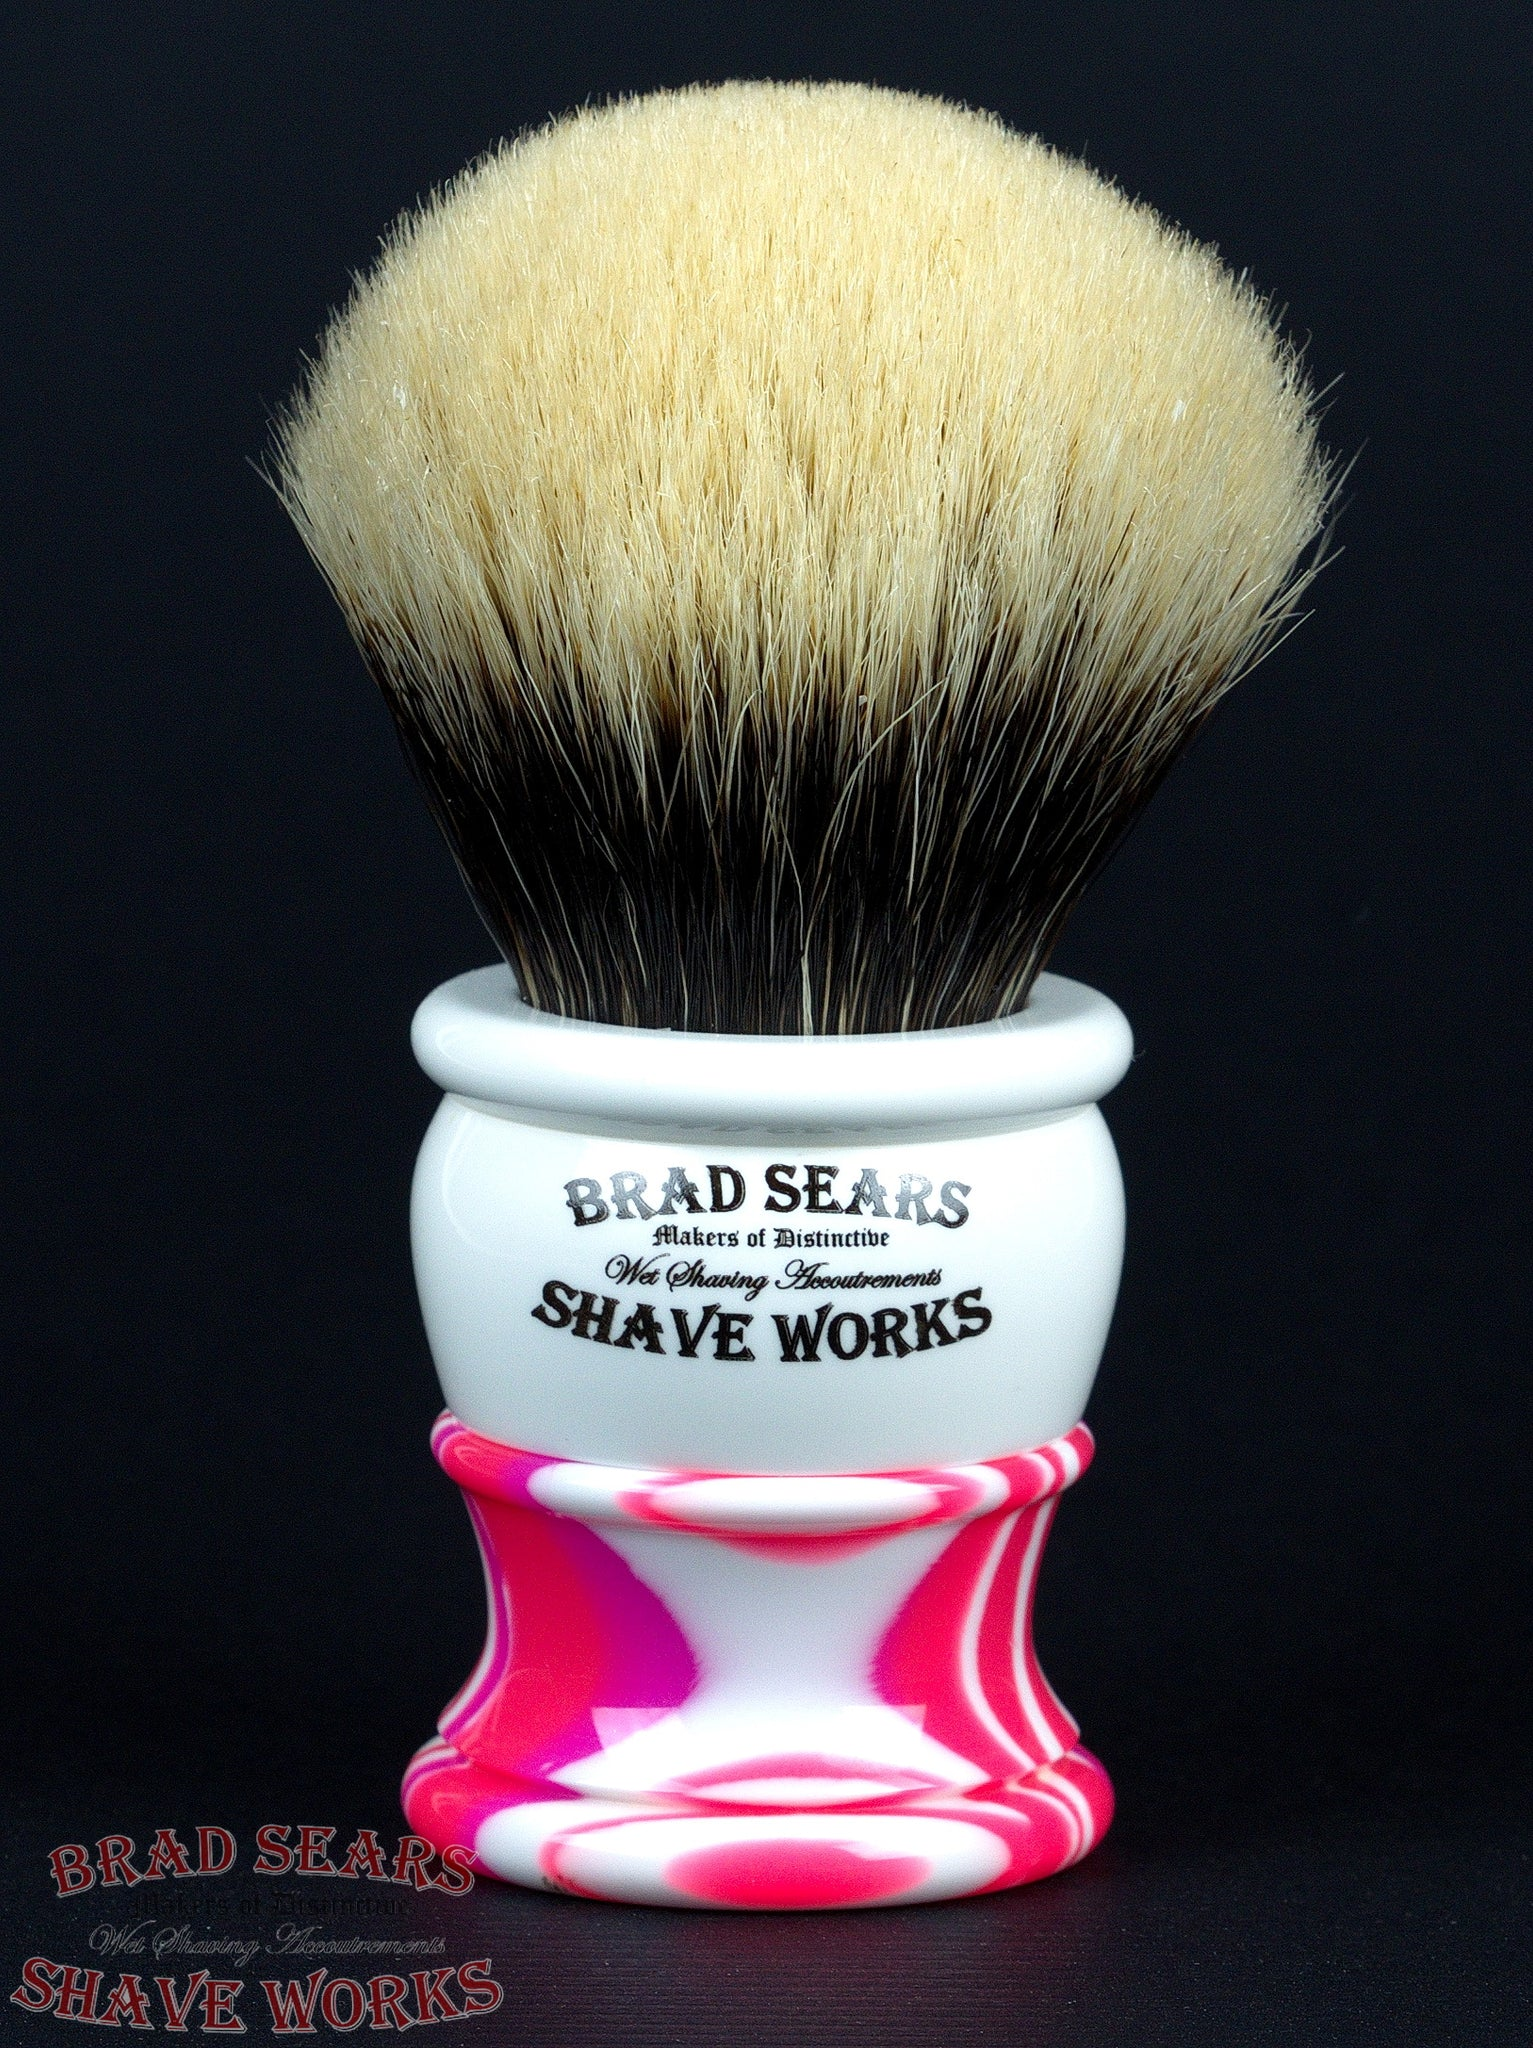 Arley/30 Shaving Brush in Passionate Pink & Porcelain by Brad Sears ShaveWorks